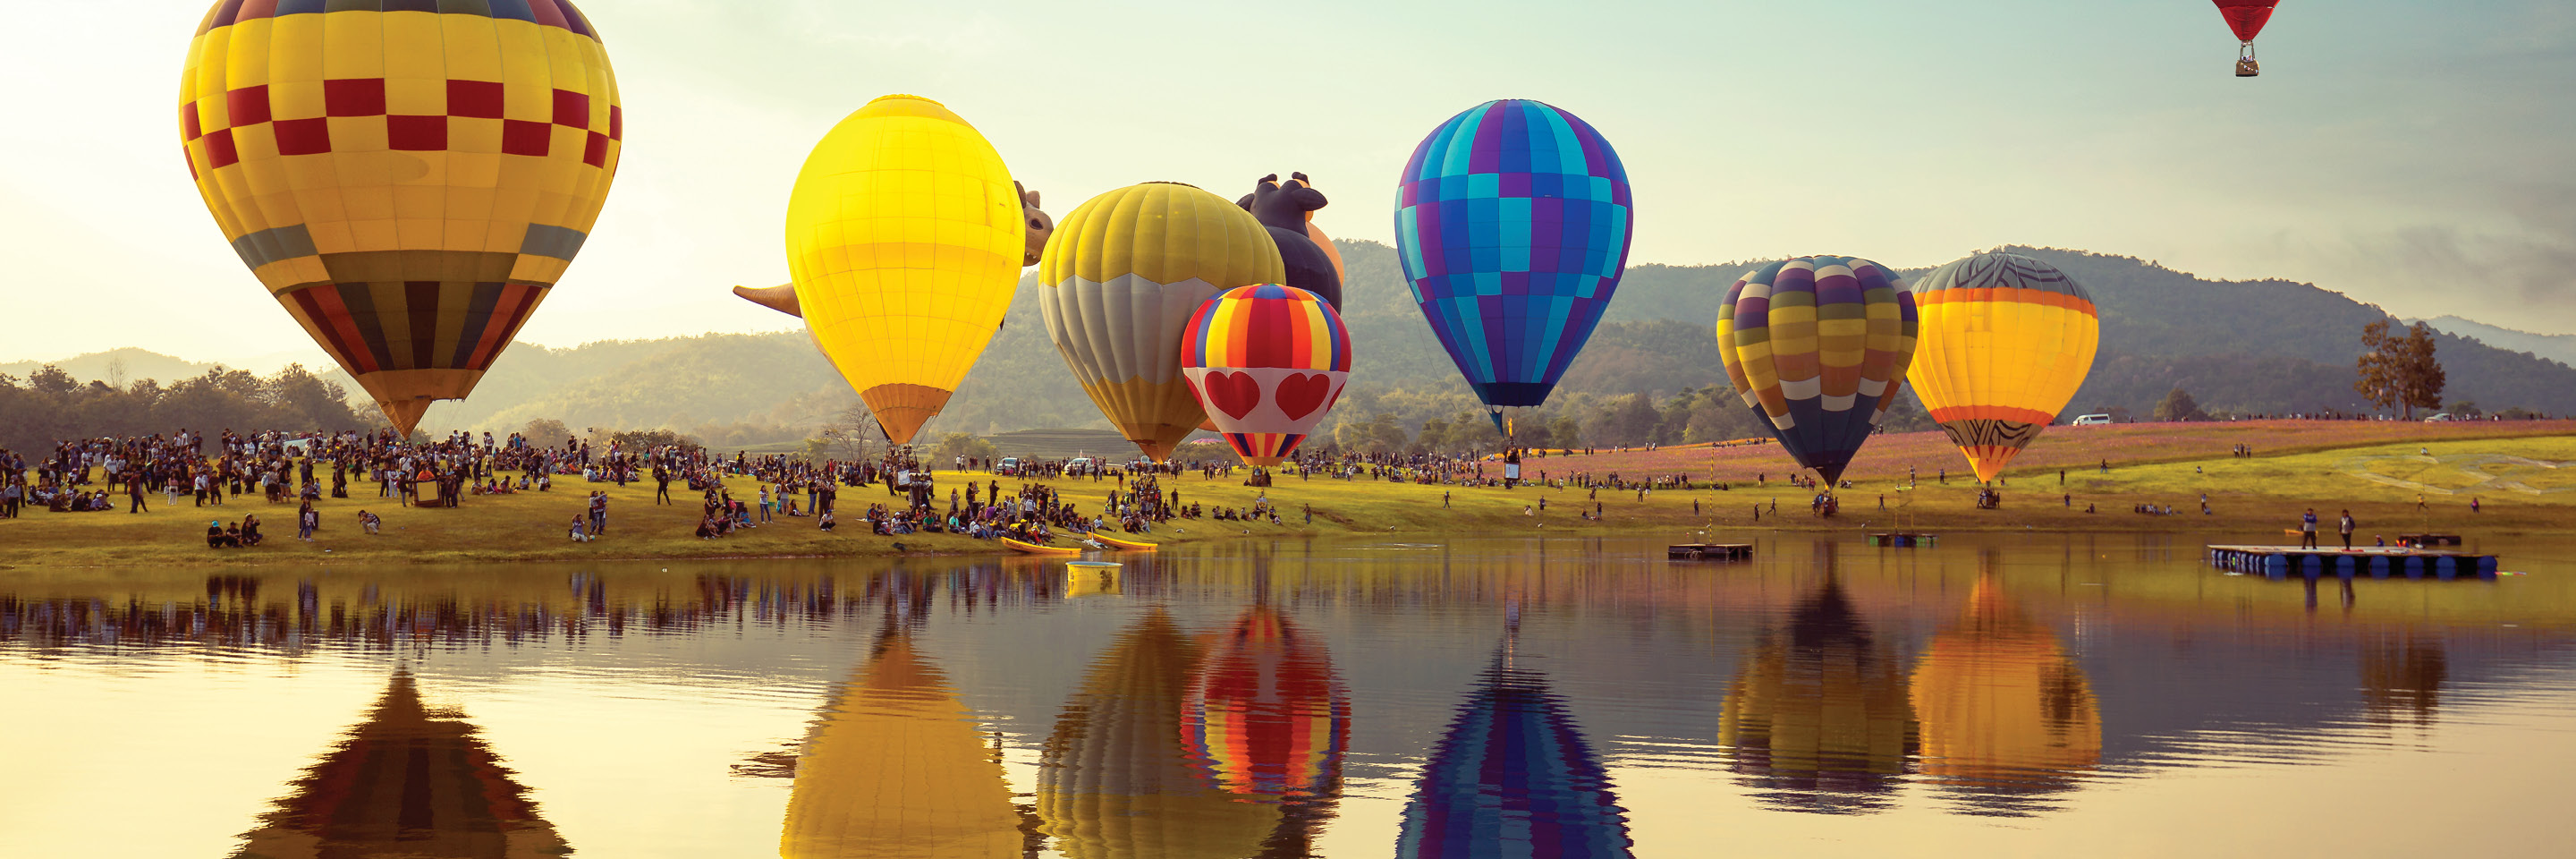 Highlights of Route 66 with Mother Road & Albuquerque Balloon Fiesta